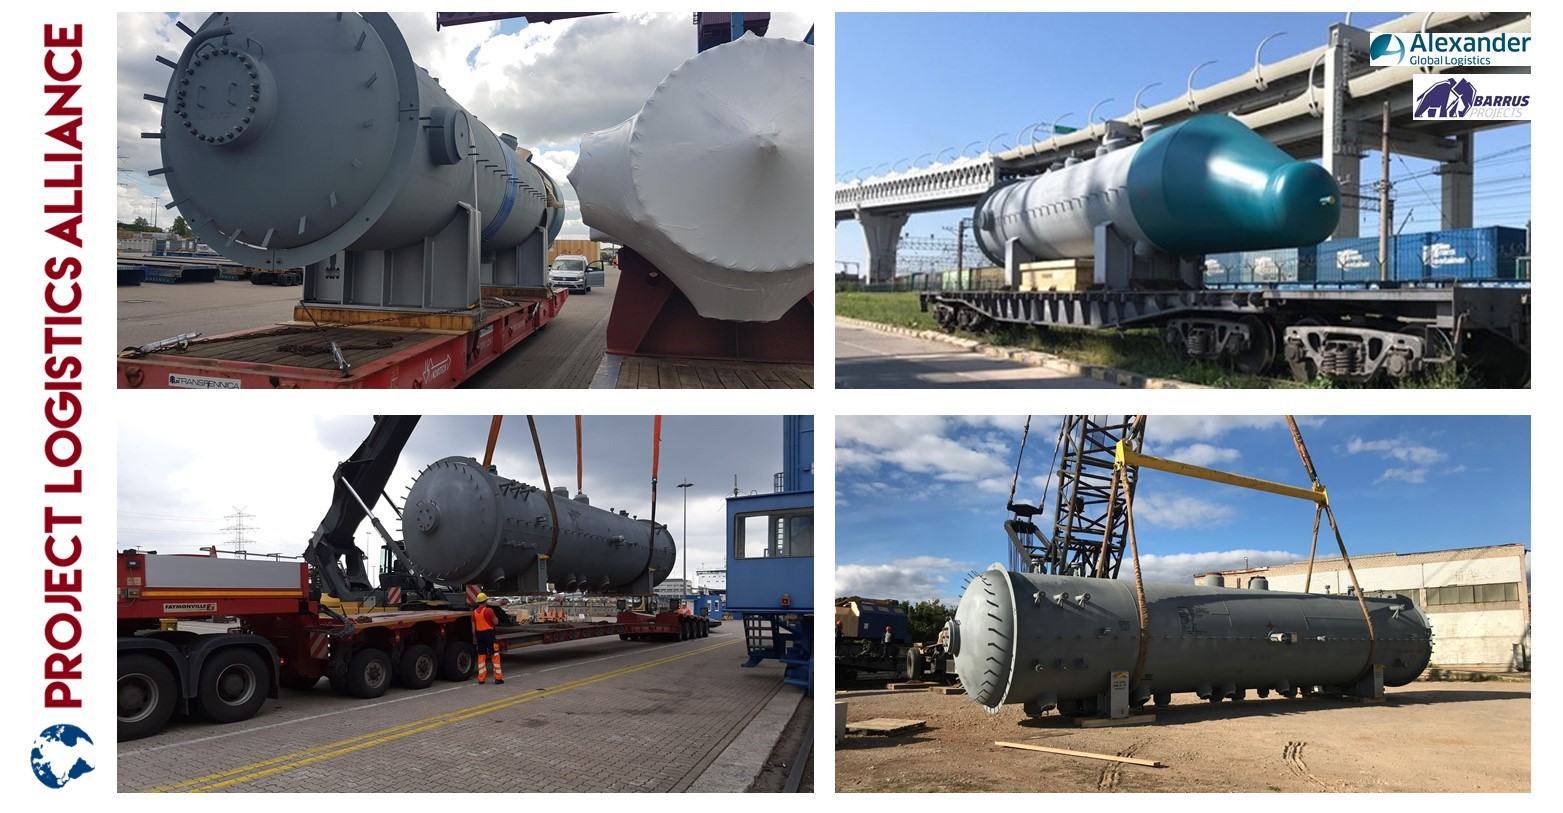 Barrus Projects And Alexander Global Logistics Deliver Heat Exchangers From Europe To Russia